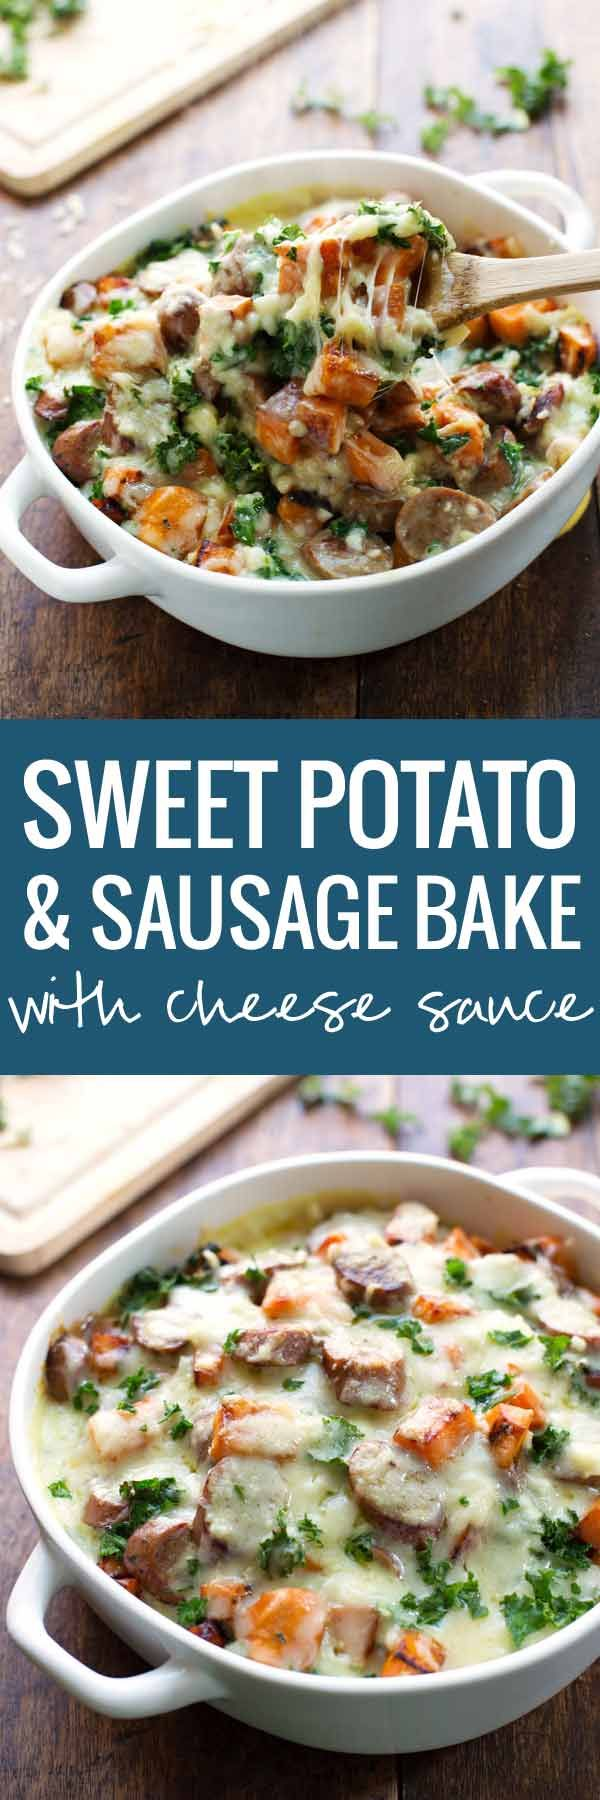 Sweet Potato, Kale, and Sausage Bake with White Cheese Sauce.